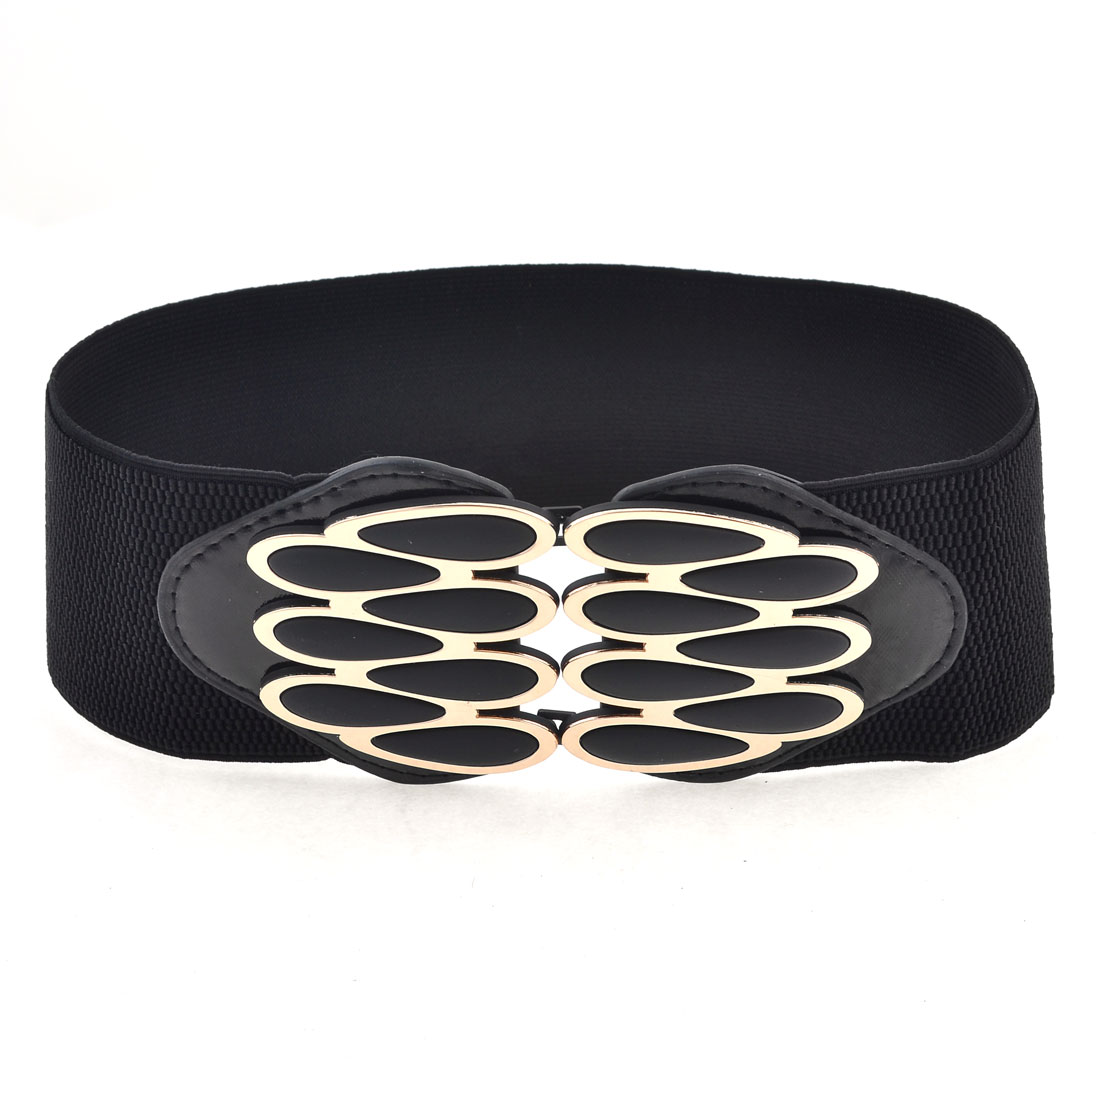 Black Wide Stretchy Band Faux Leather Plastic Waterdrop Decor Belt for Girls